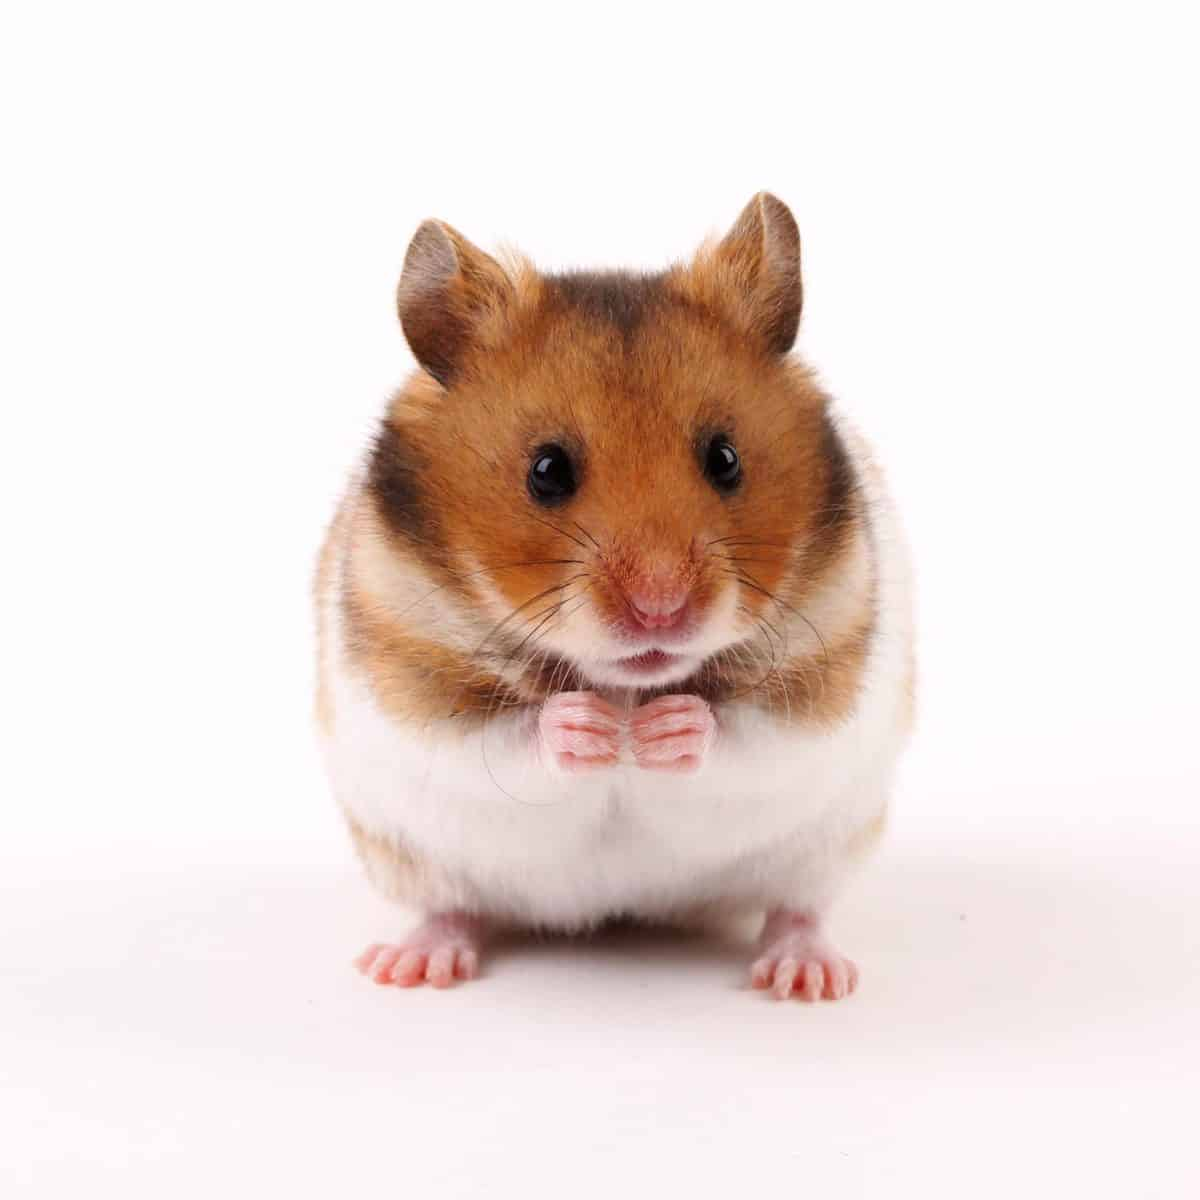 Hamster with sharp nails